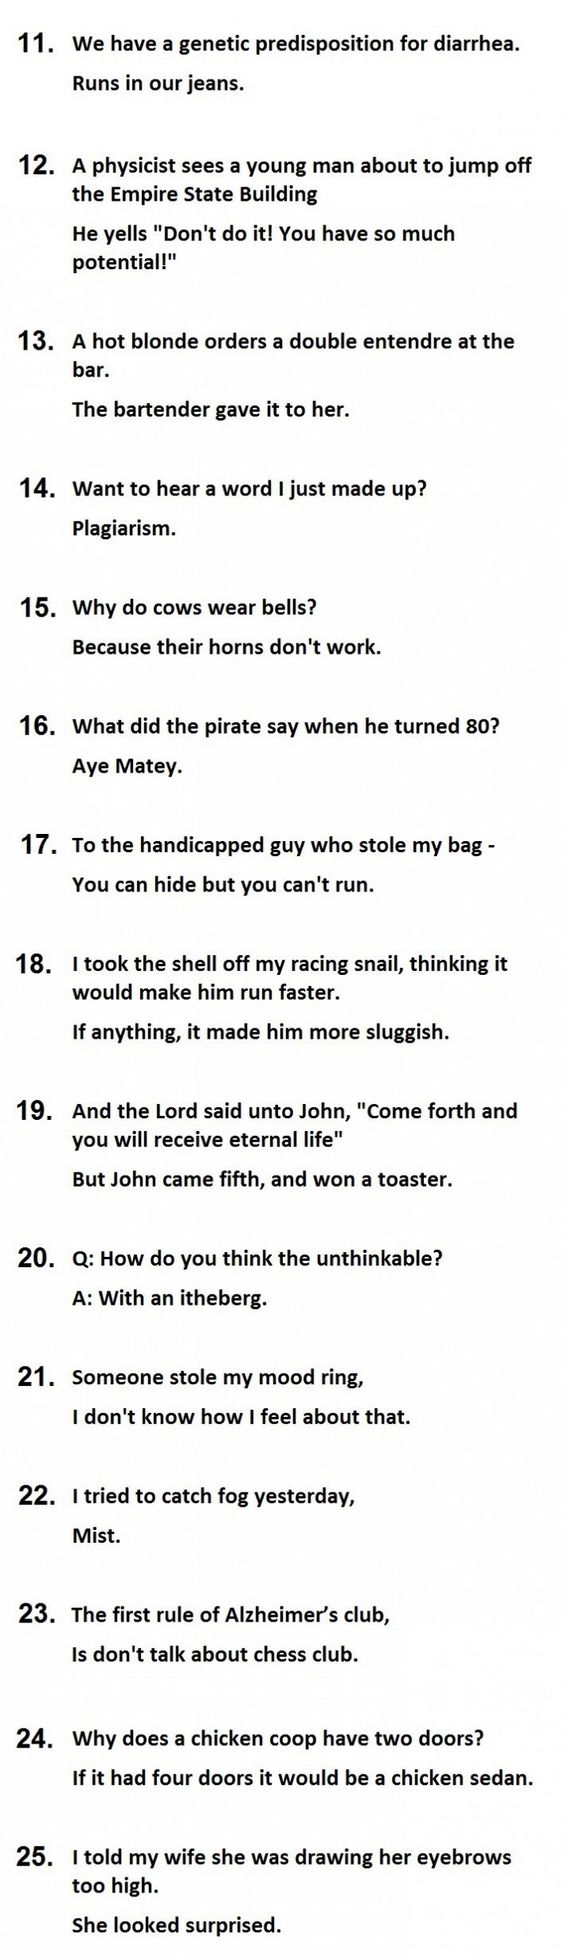 The 25 Best Two Line Jokes...Part 3